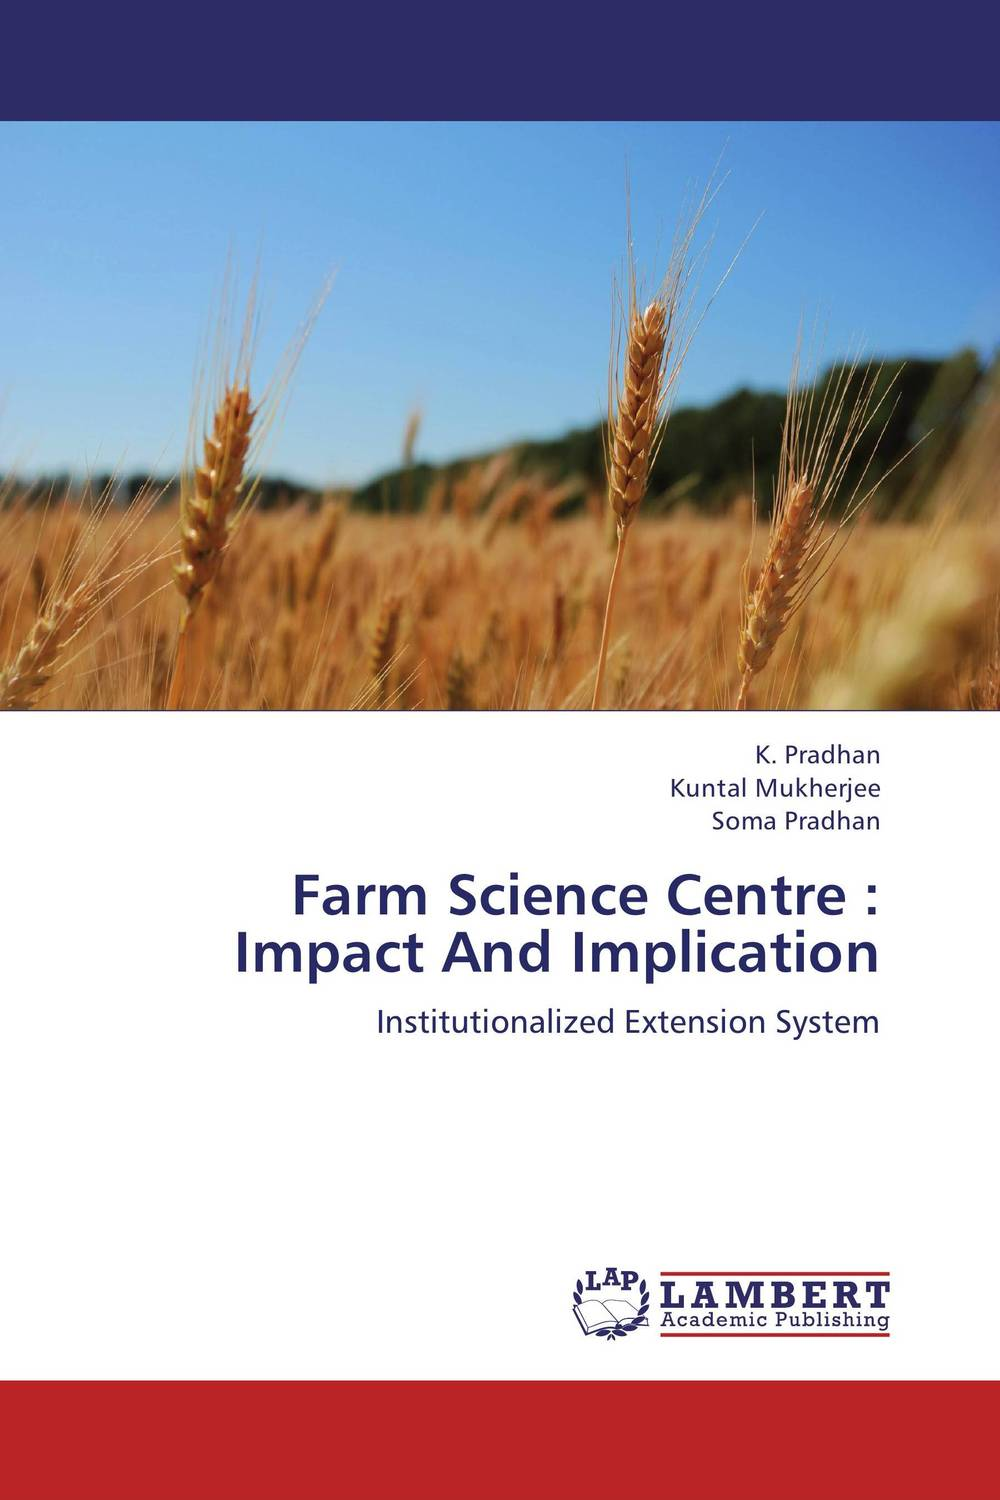 Farm Science Centre : Impact And Implication duncan bruce the dream cafe lessons in the art of radical innovation